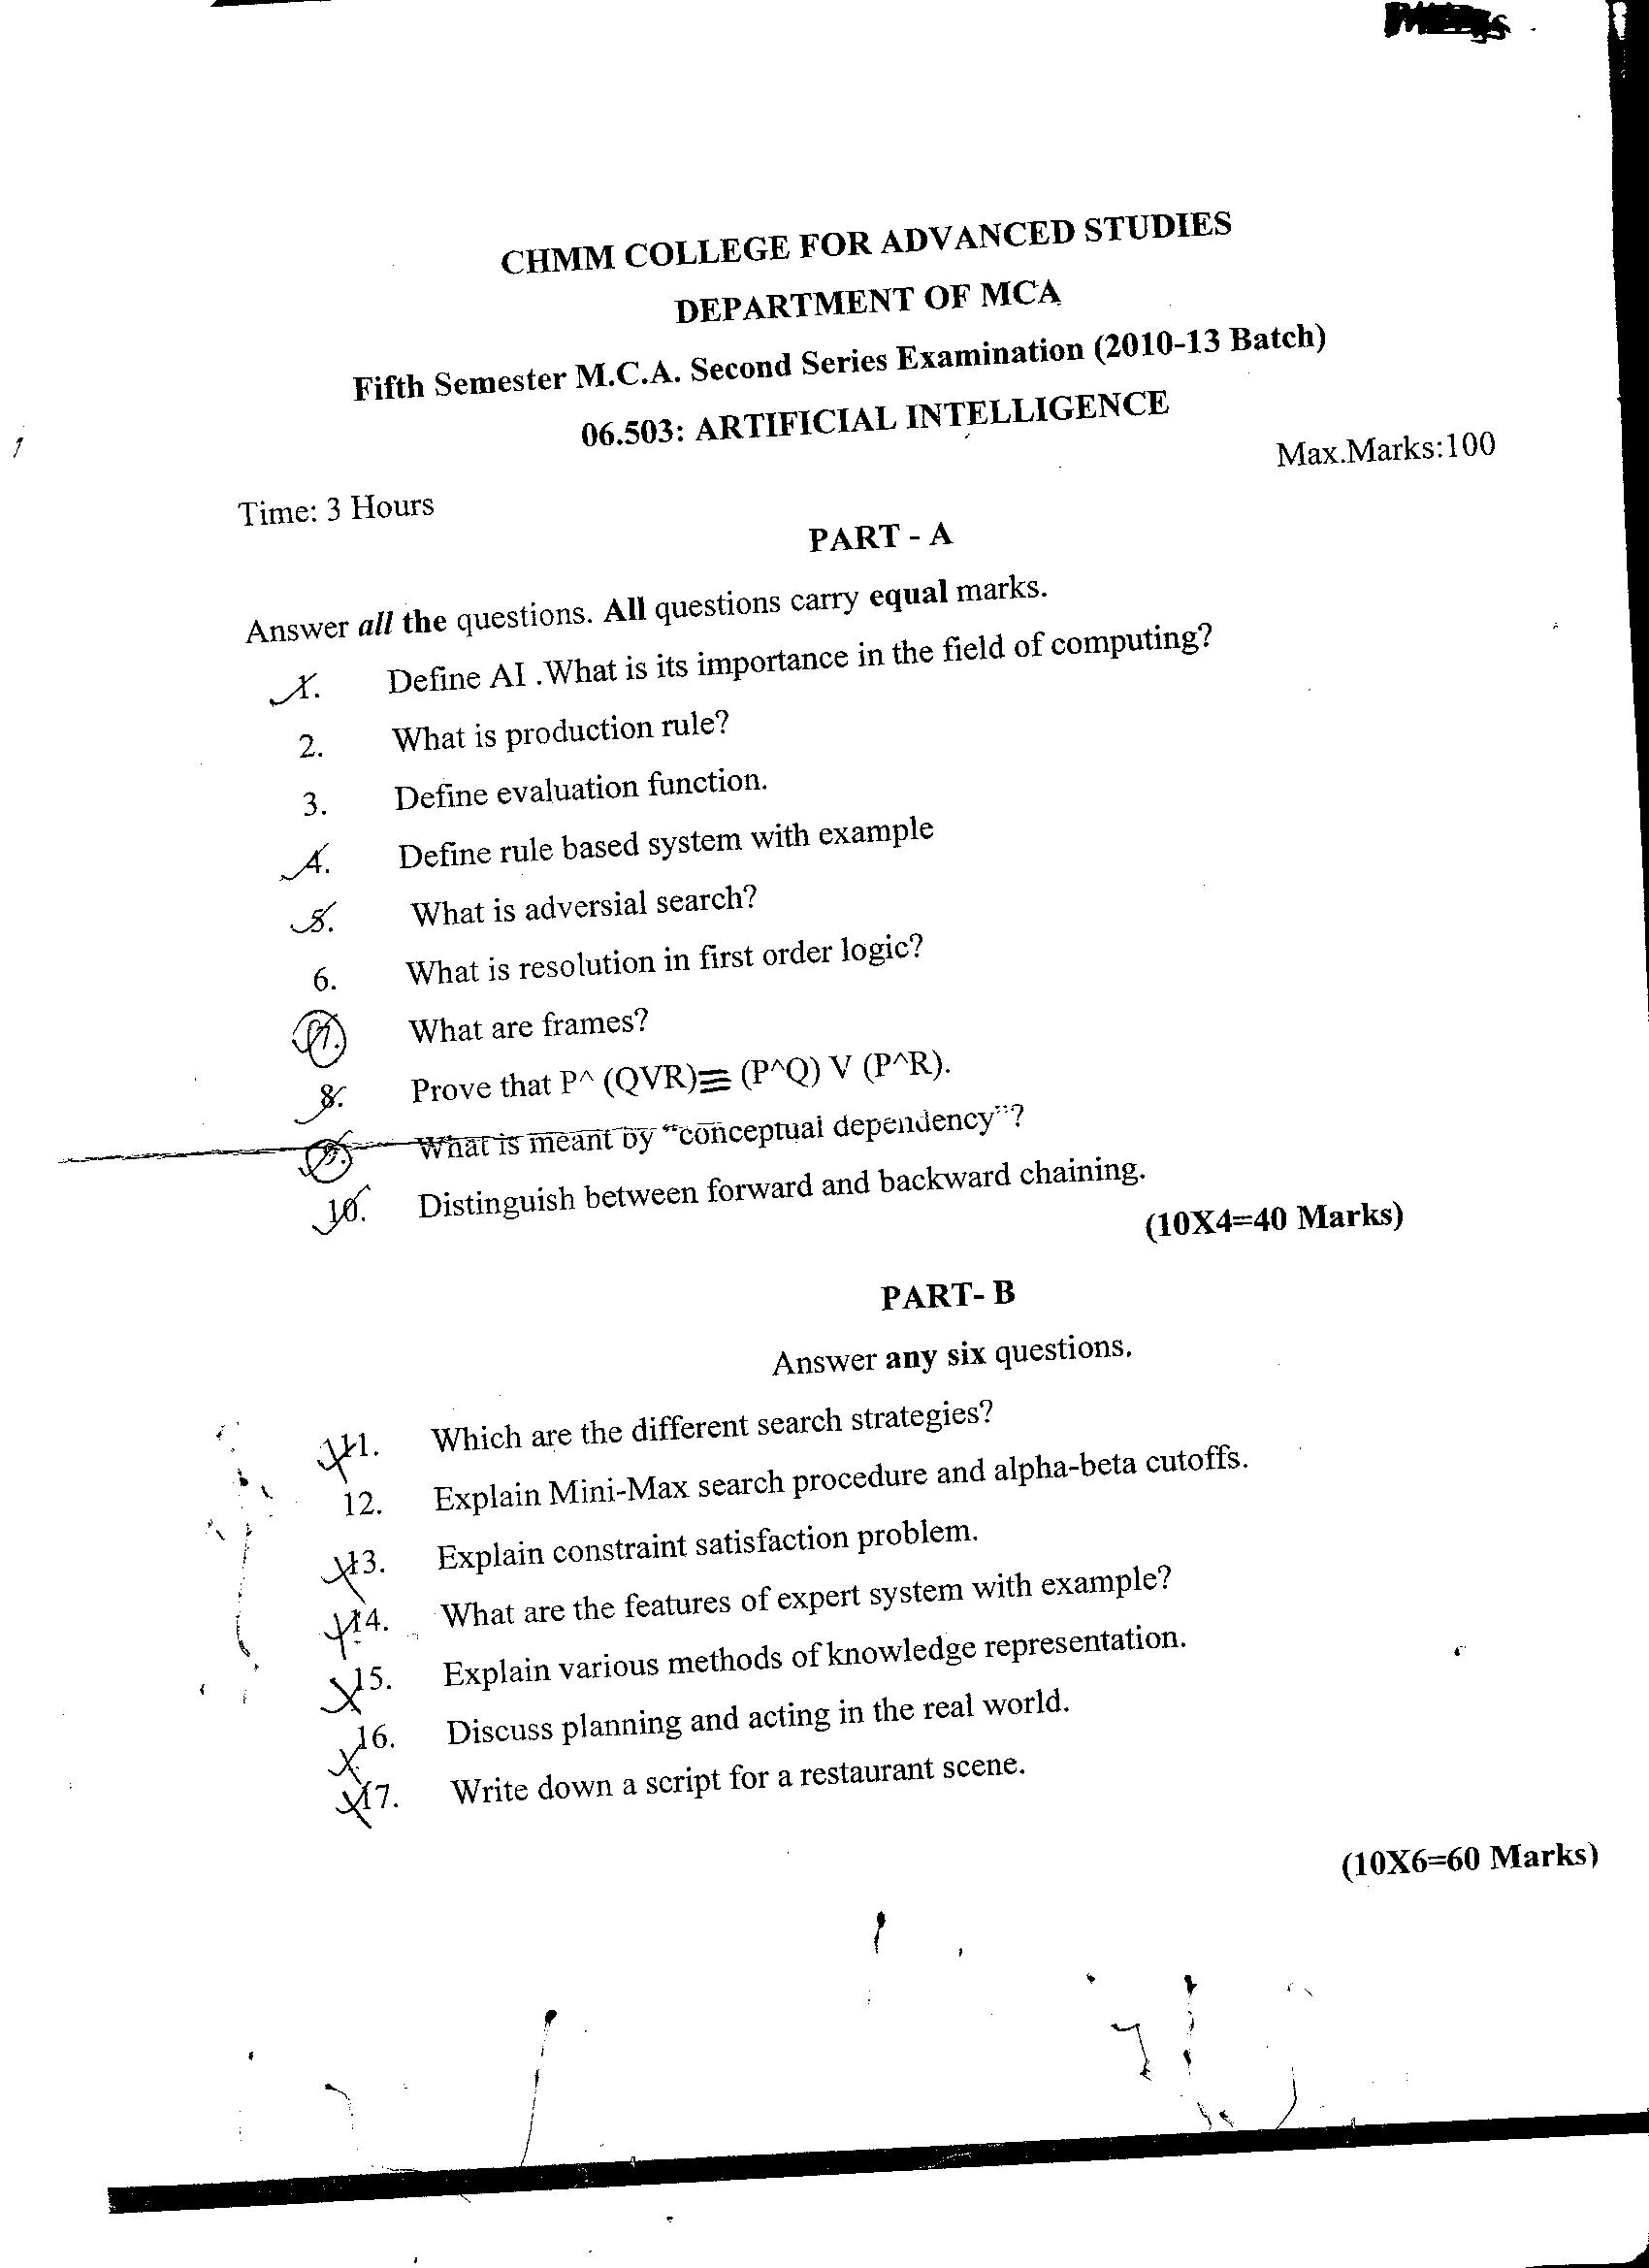 artificial intelligence midterm exam paper Csci 561 midterm exam fall 2002 midterm examination csci 561: artificial intelligence csci 561 foundations of artificial intelligence exam #2 final paper.